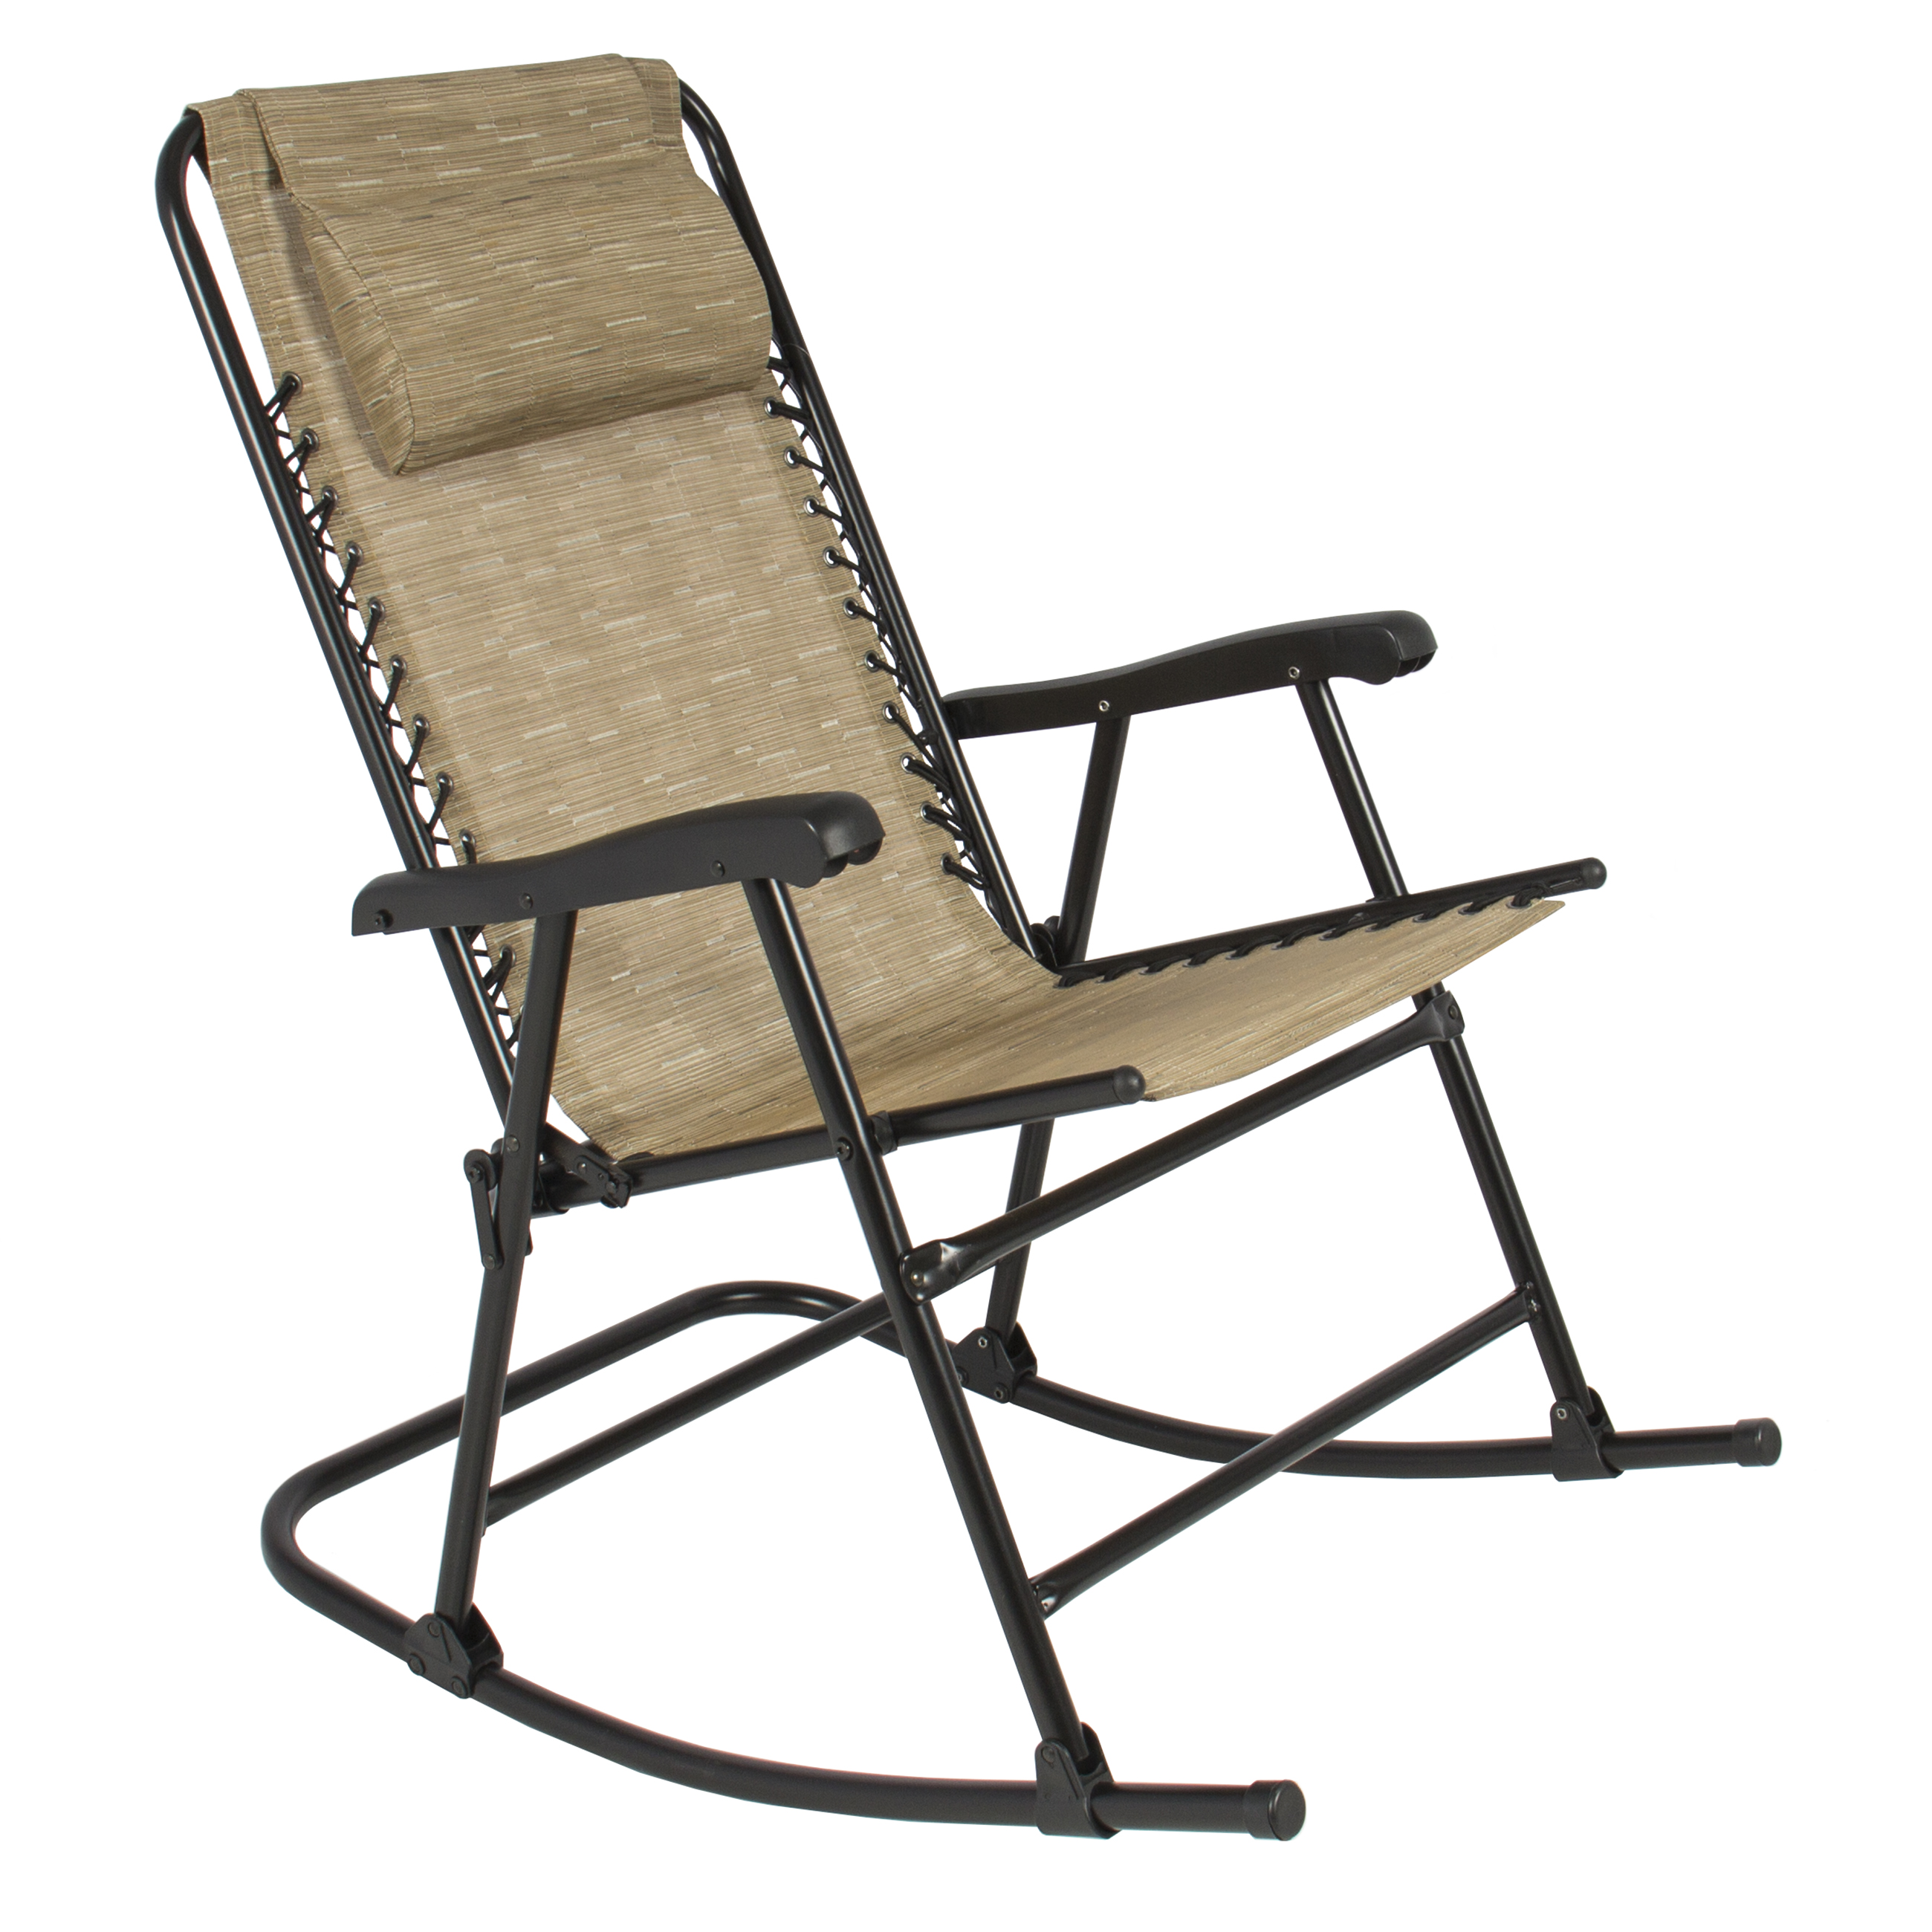 Folding Rocking Chair Foldable Rocker Outdoor Patio Furniture Beige Walmart Com